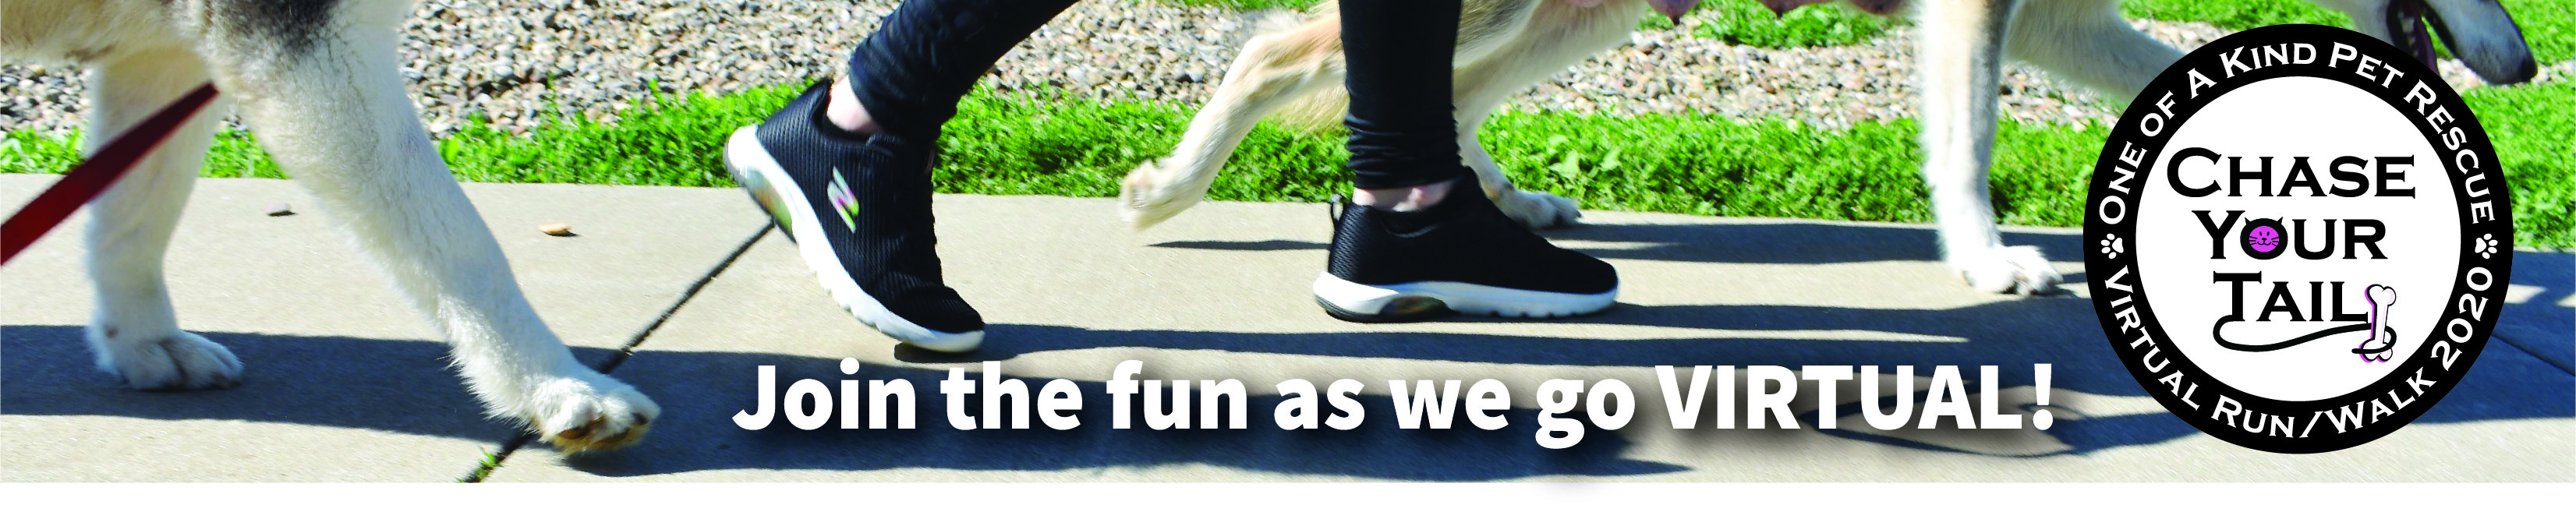 Register for the 2020 Virtual Chase Your Tail - 1 Mile Doggie Dash, 5K and 10K